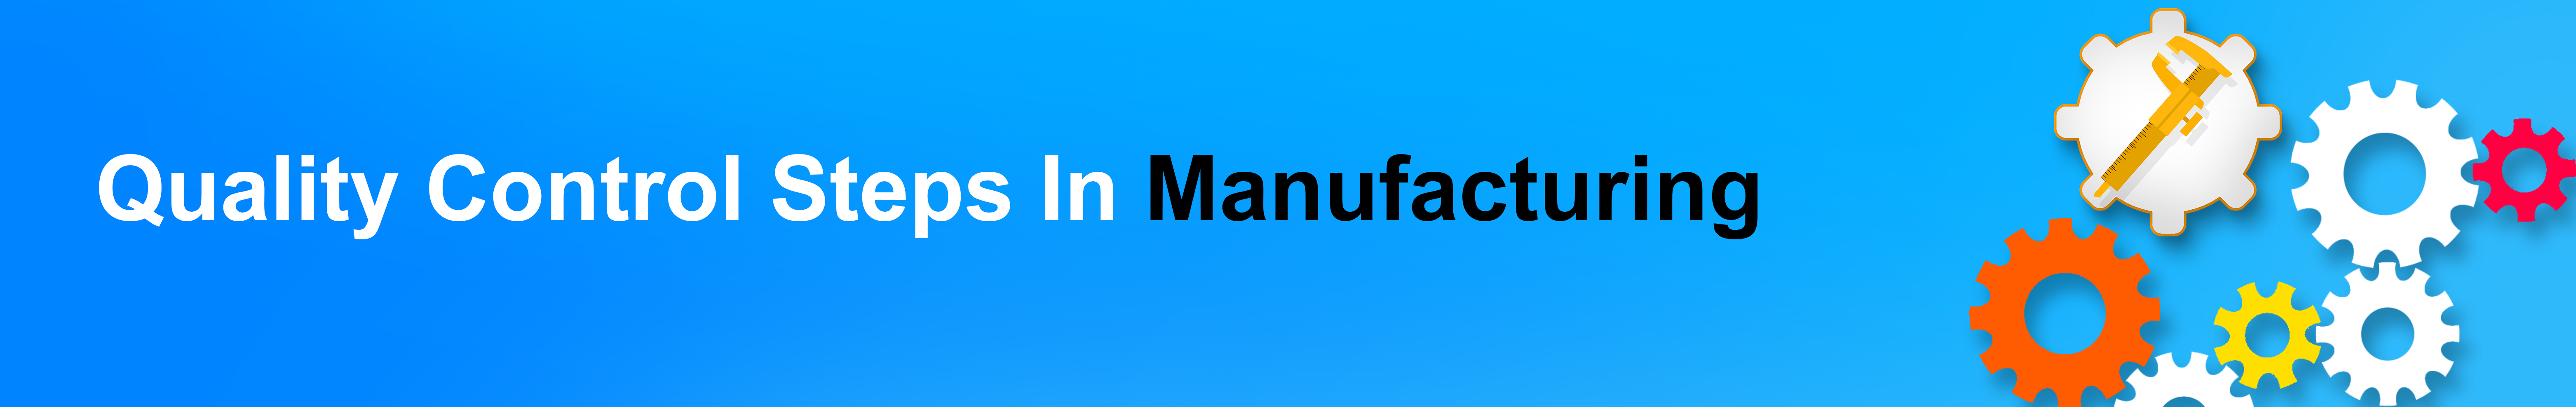 Quality Control steps in Manufacturing